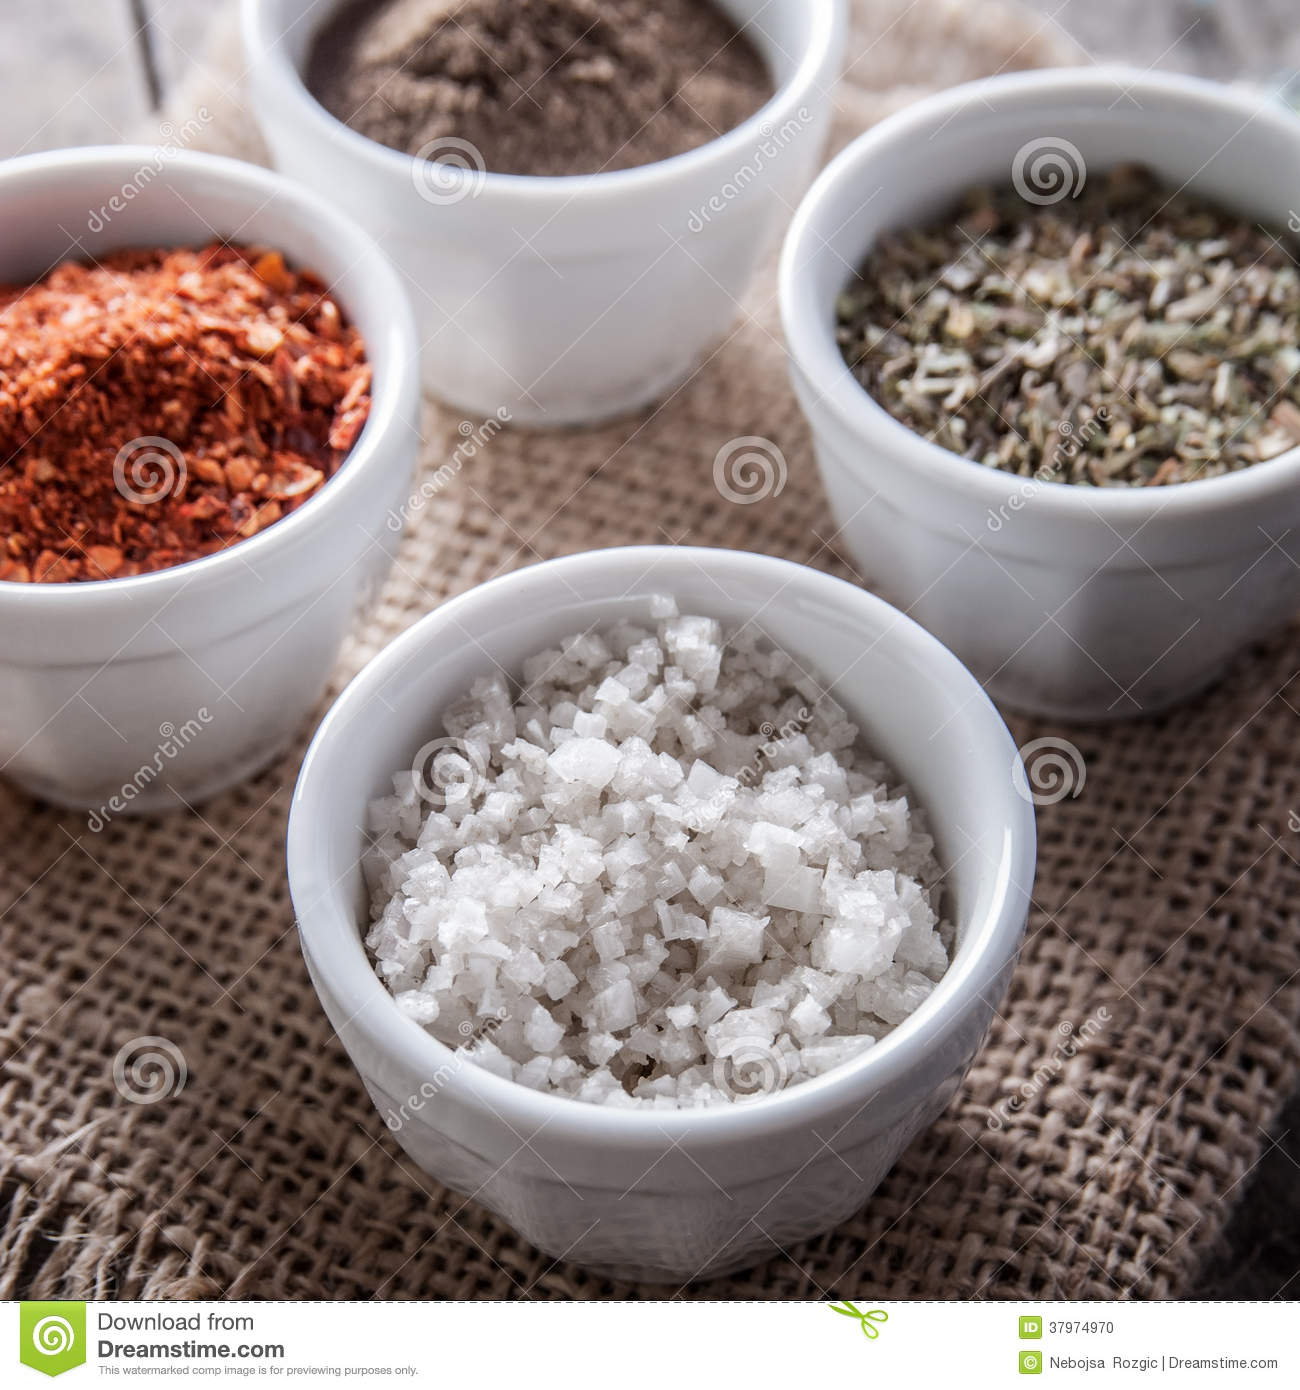 Pepper, Oregano And Cooking Salt In Bowls Stock Photo